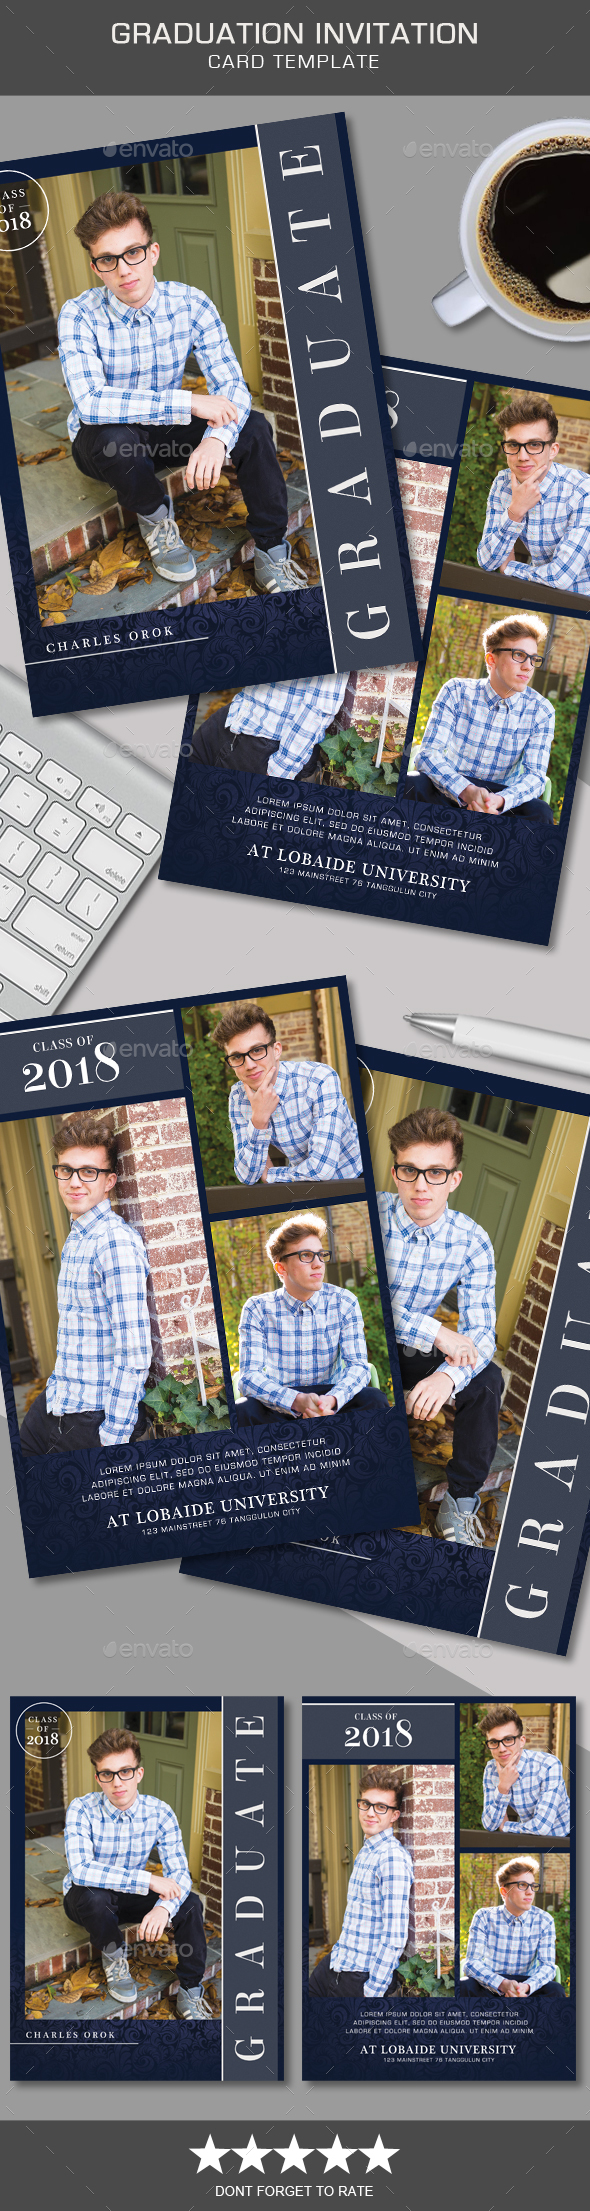 Graduation Invitation - Cards & Invites Print Templates